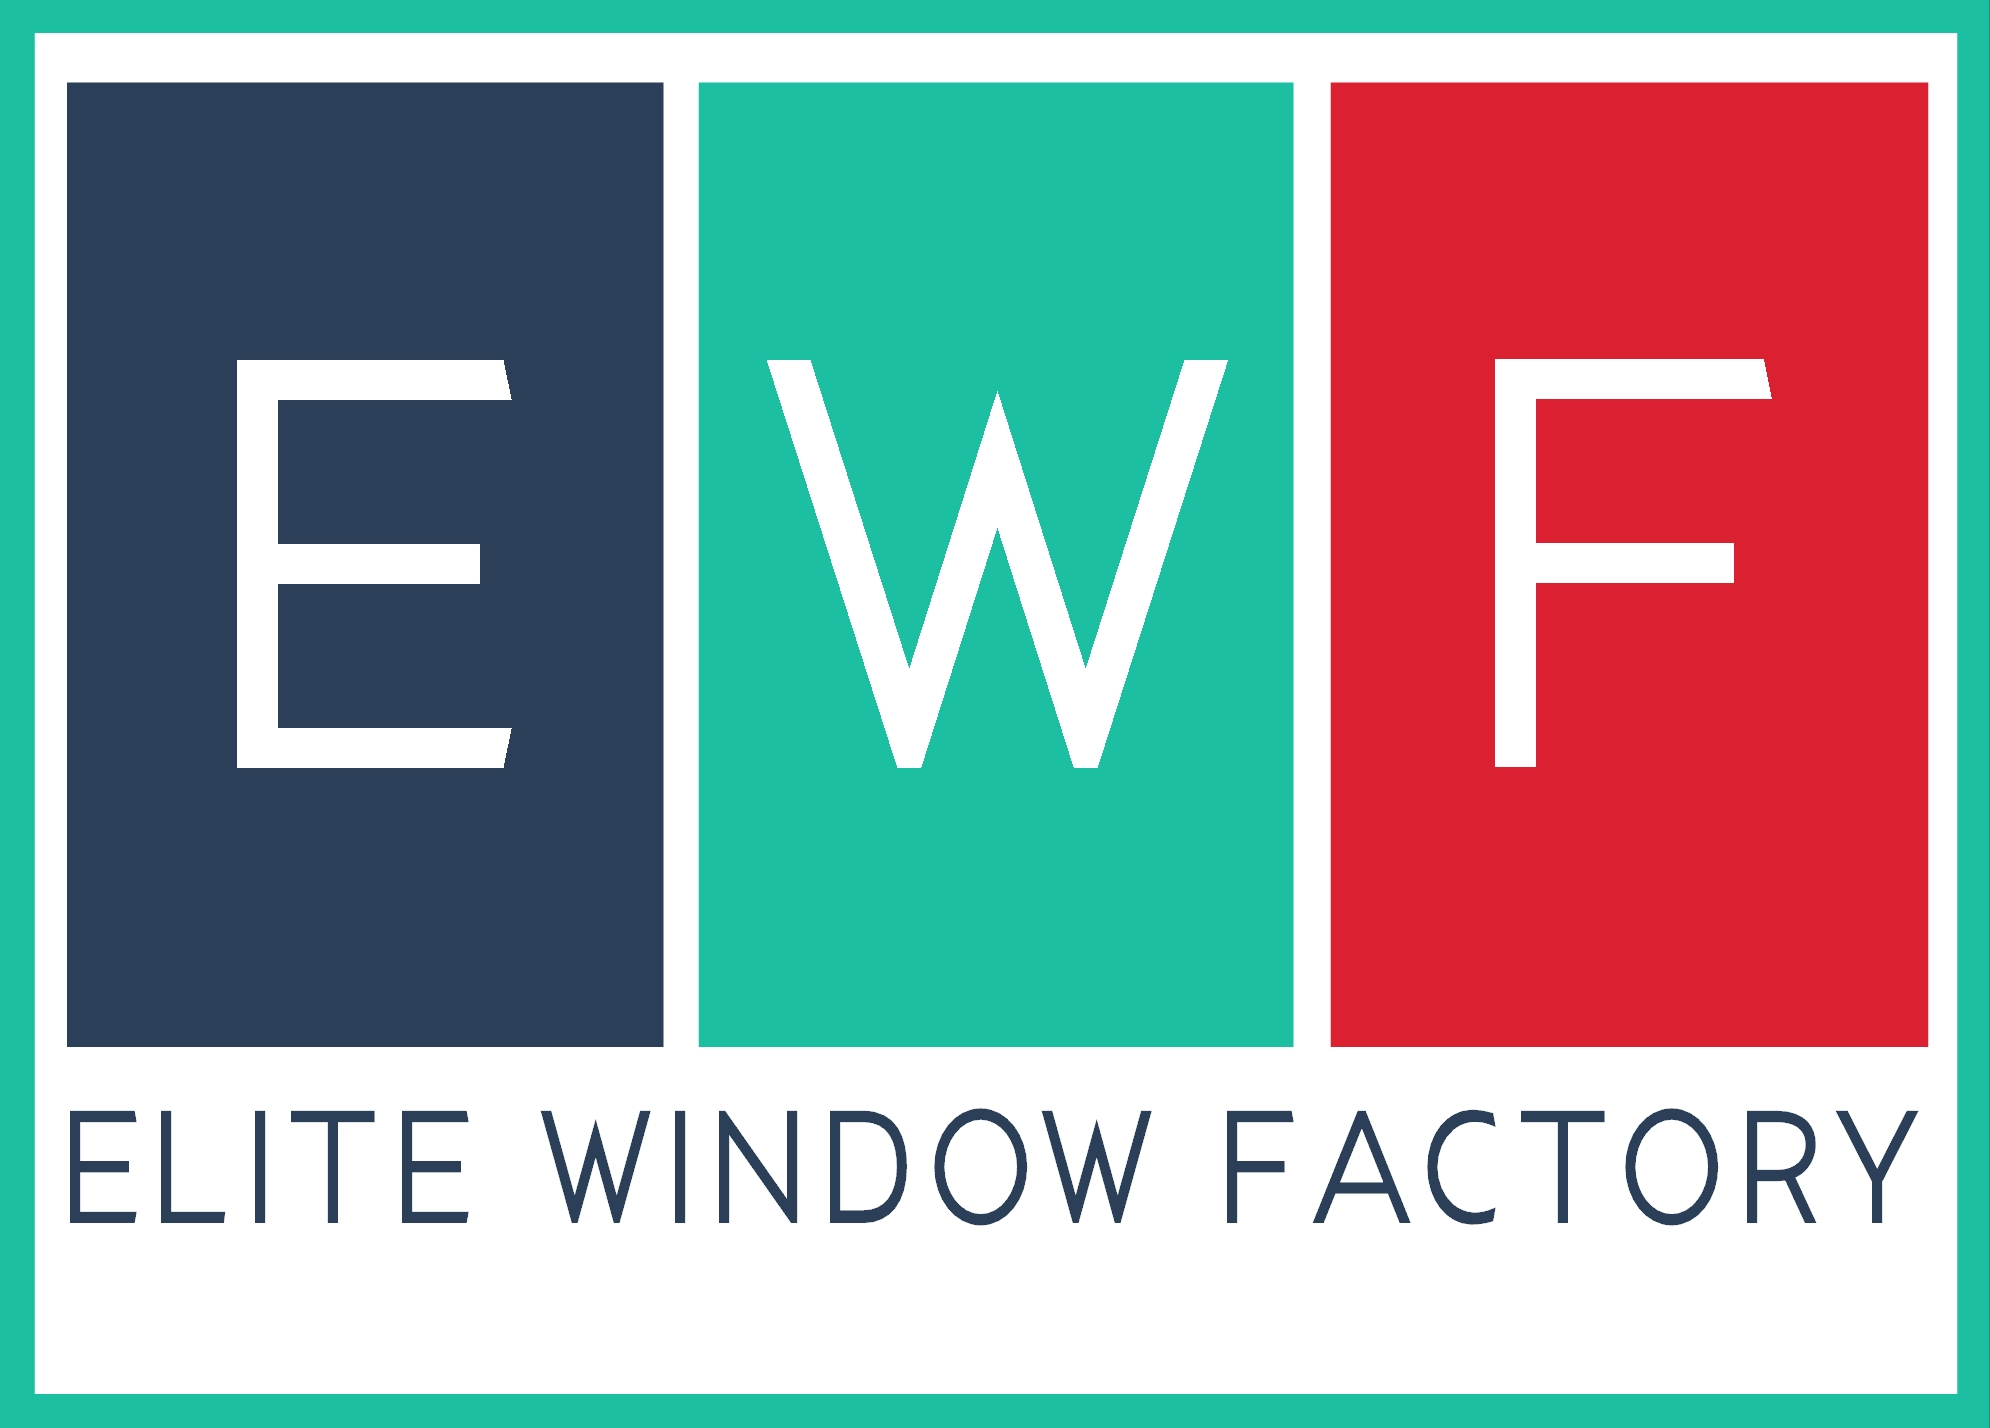 Elite Window Factory